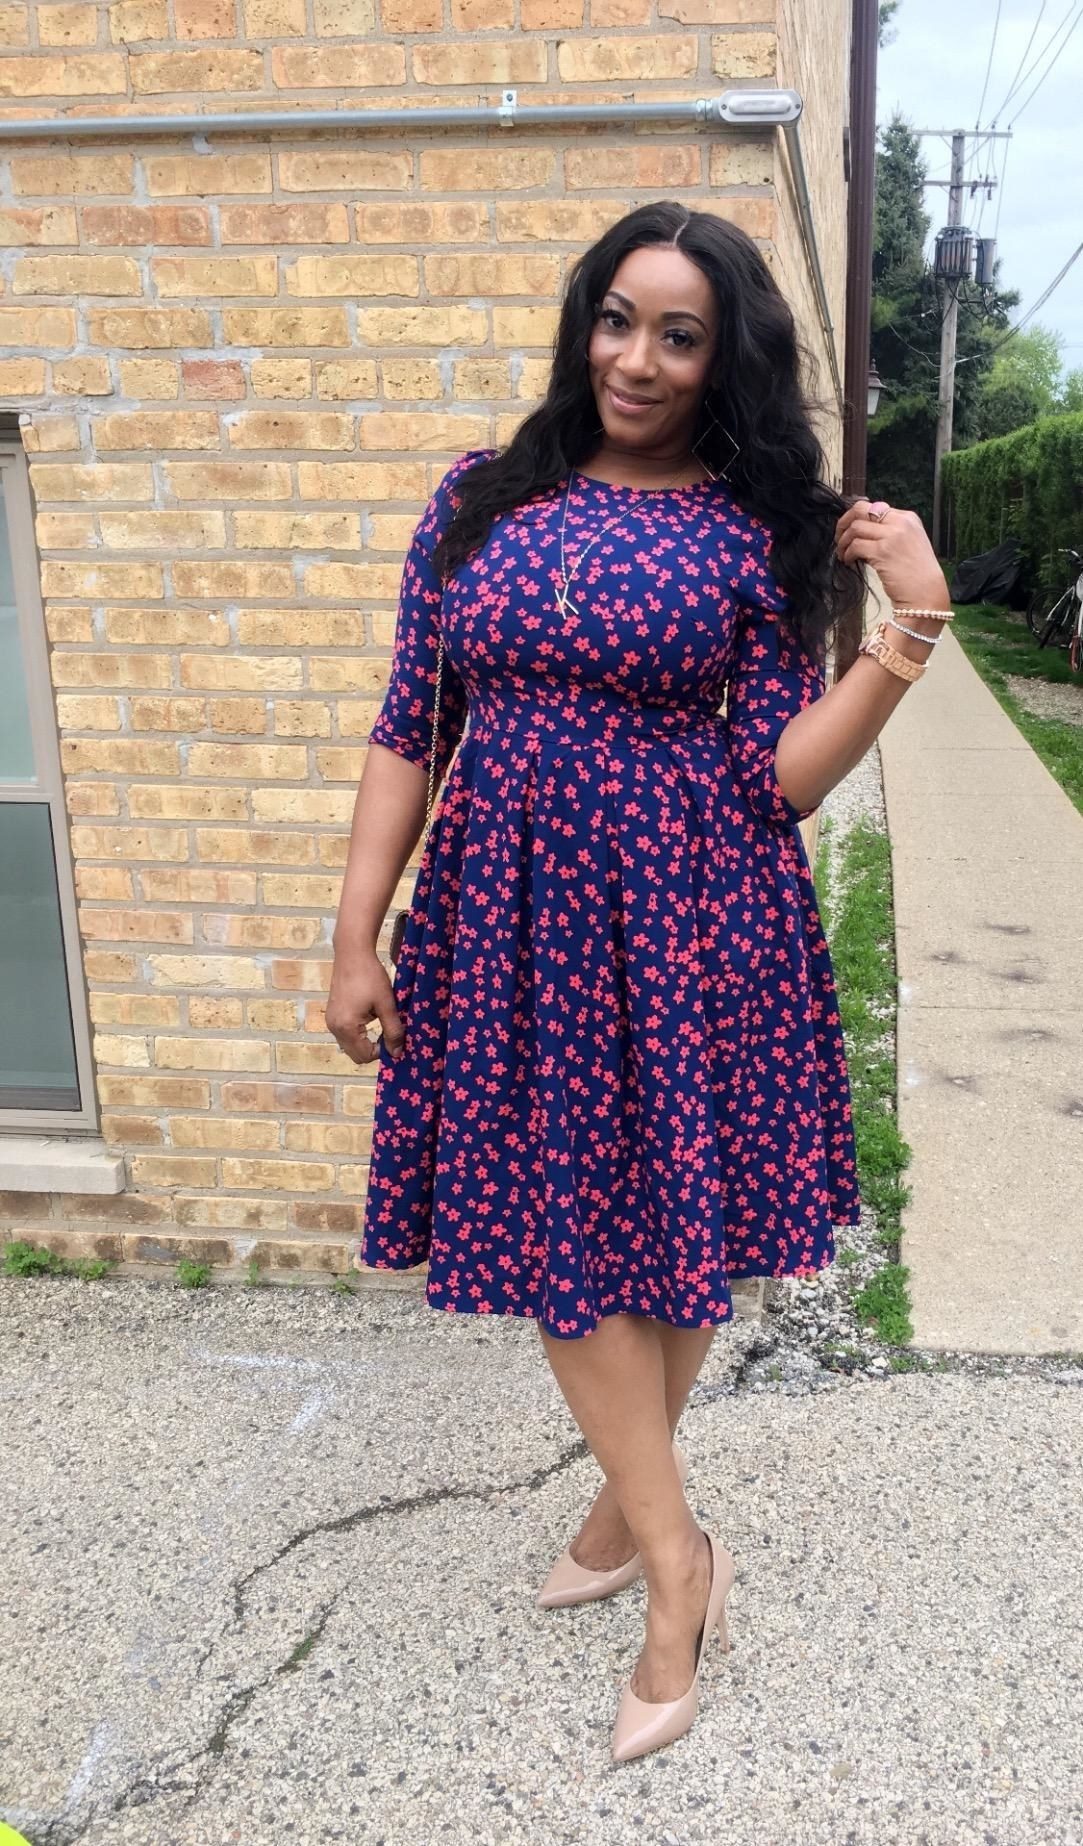 Reviewer wearing the knee-length dress in blue with small red flowers on it